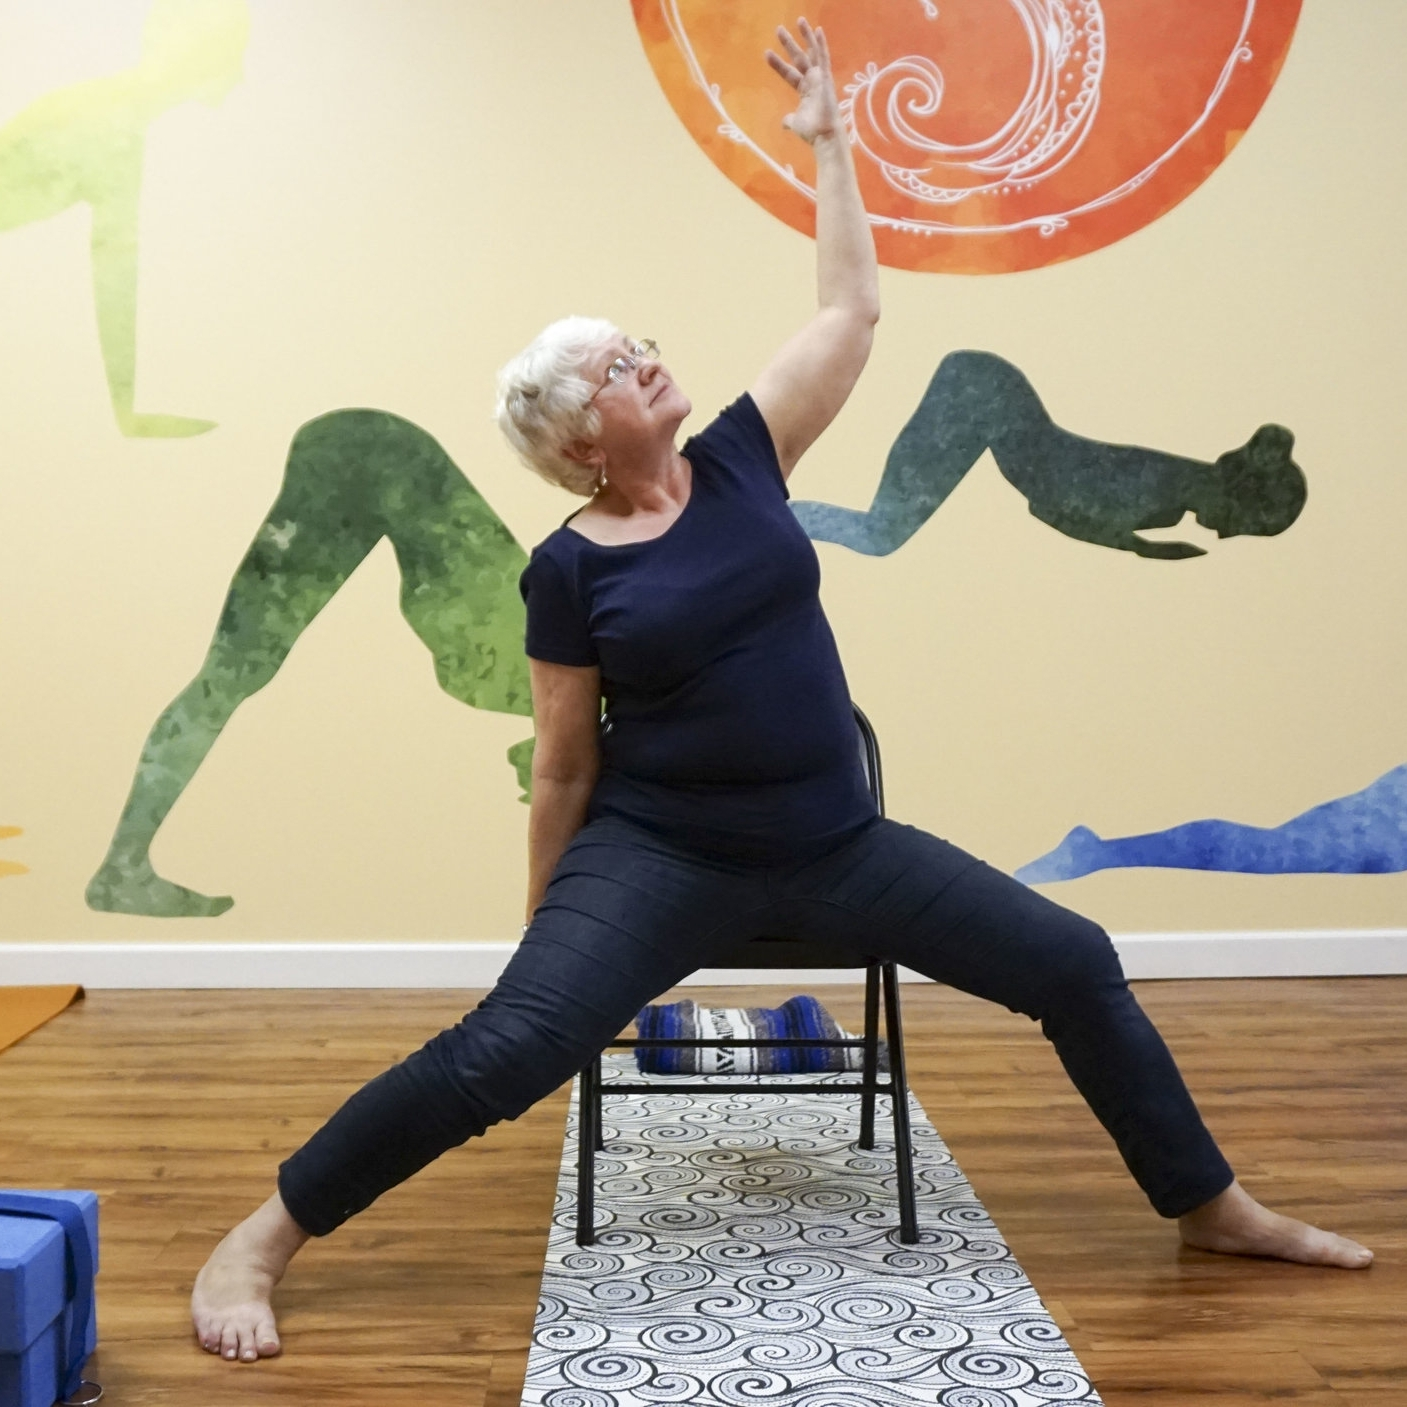 Chair Yoga  For those who need modifications to fit their specific needs. Click to read more!